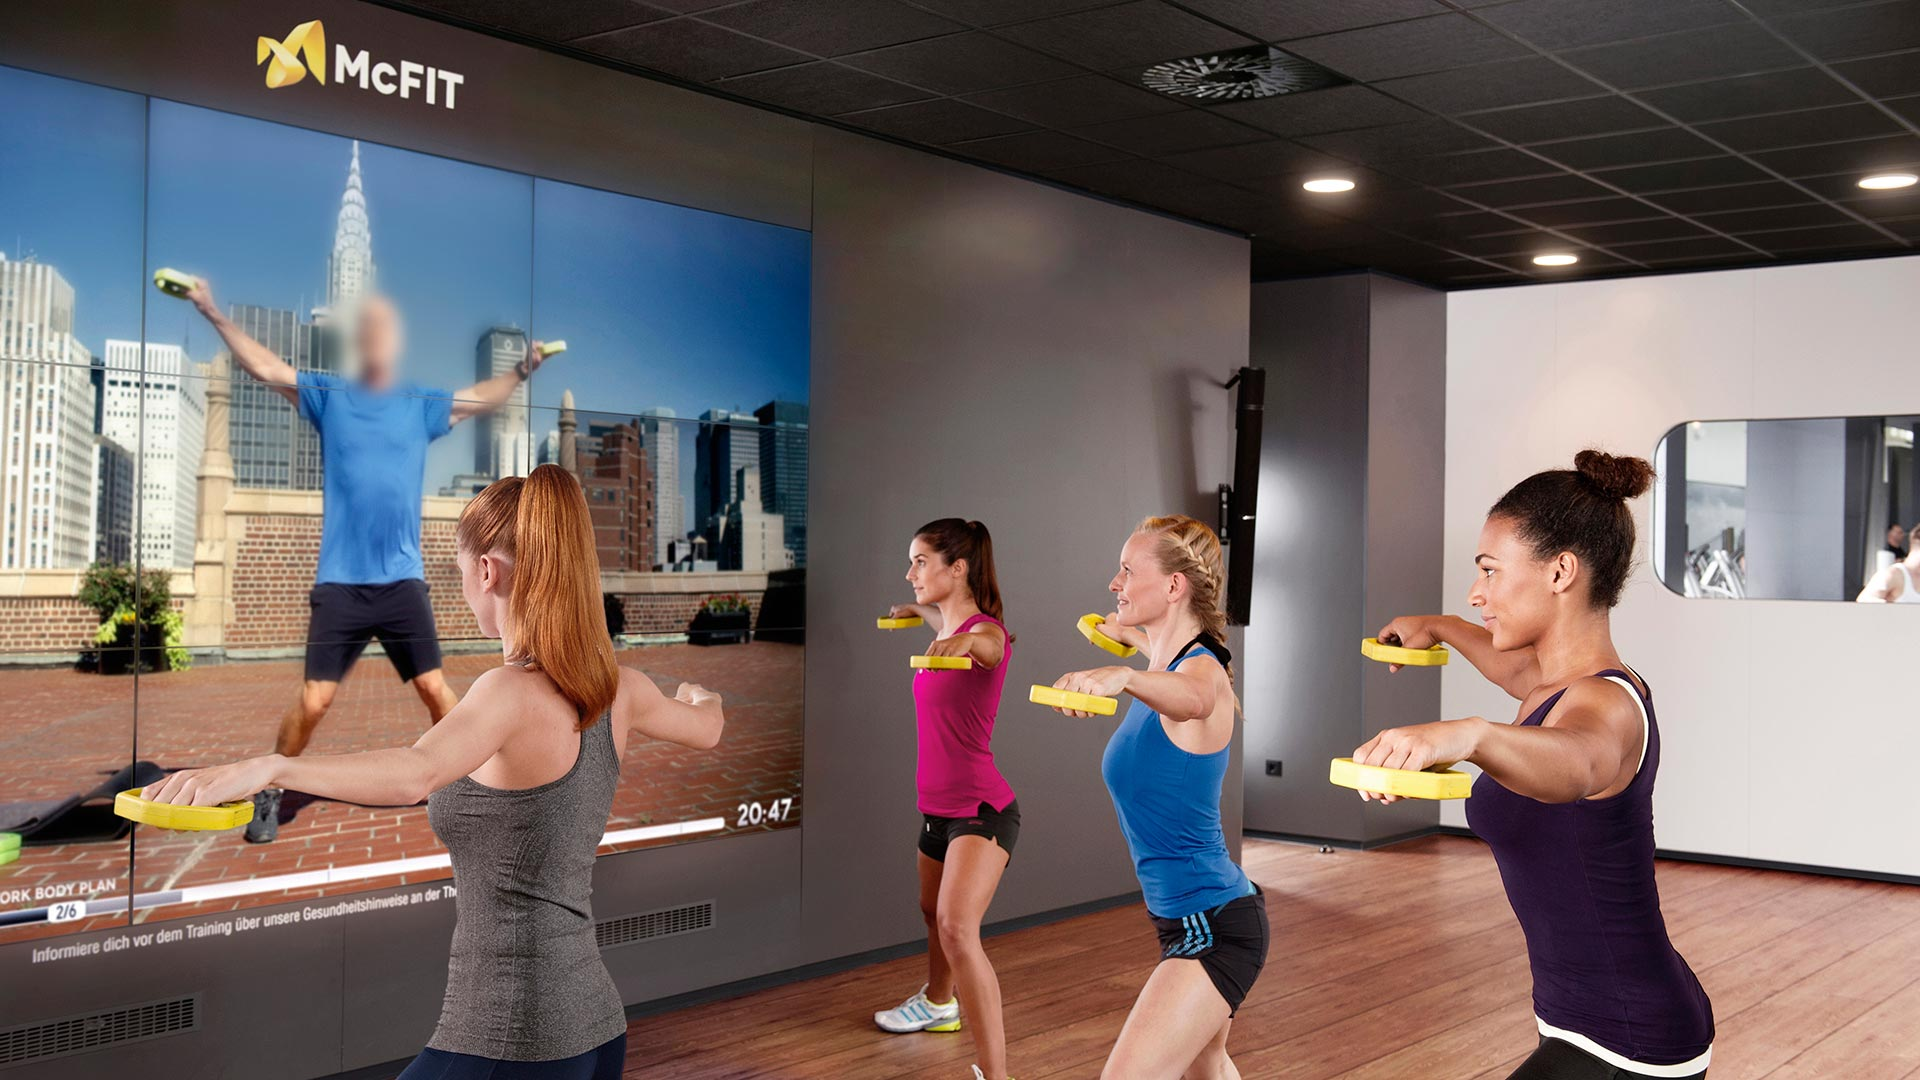 AV Technology for Fitness Facilities